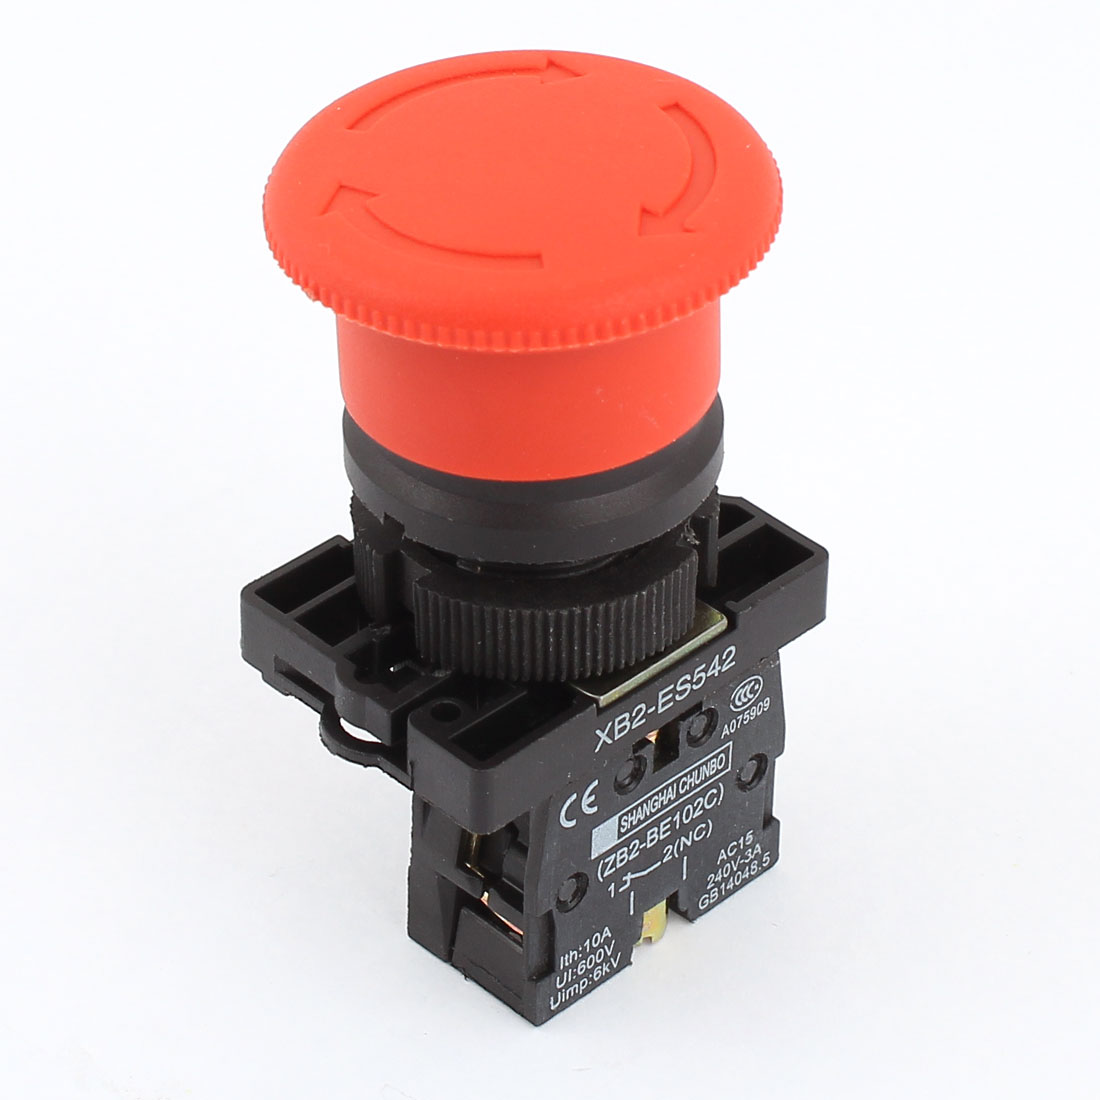 Ui 600V Ith 10A SPST NC Emergency Stop Latching Red Mushroom Push Button Switch